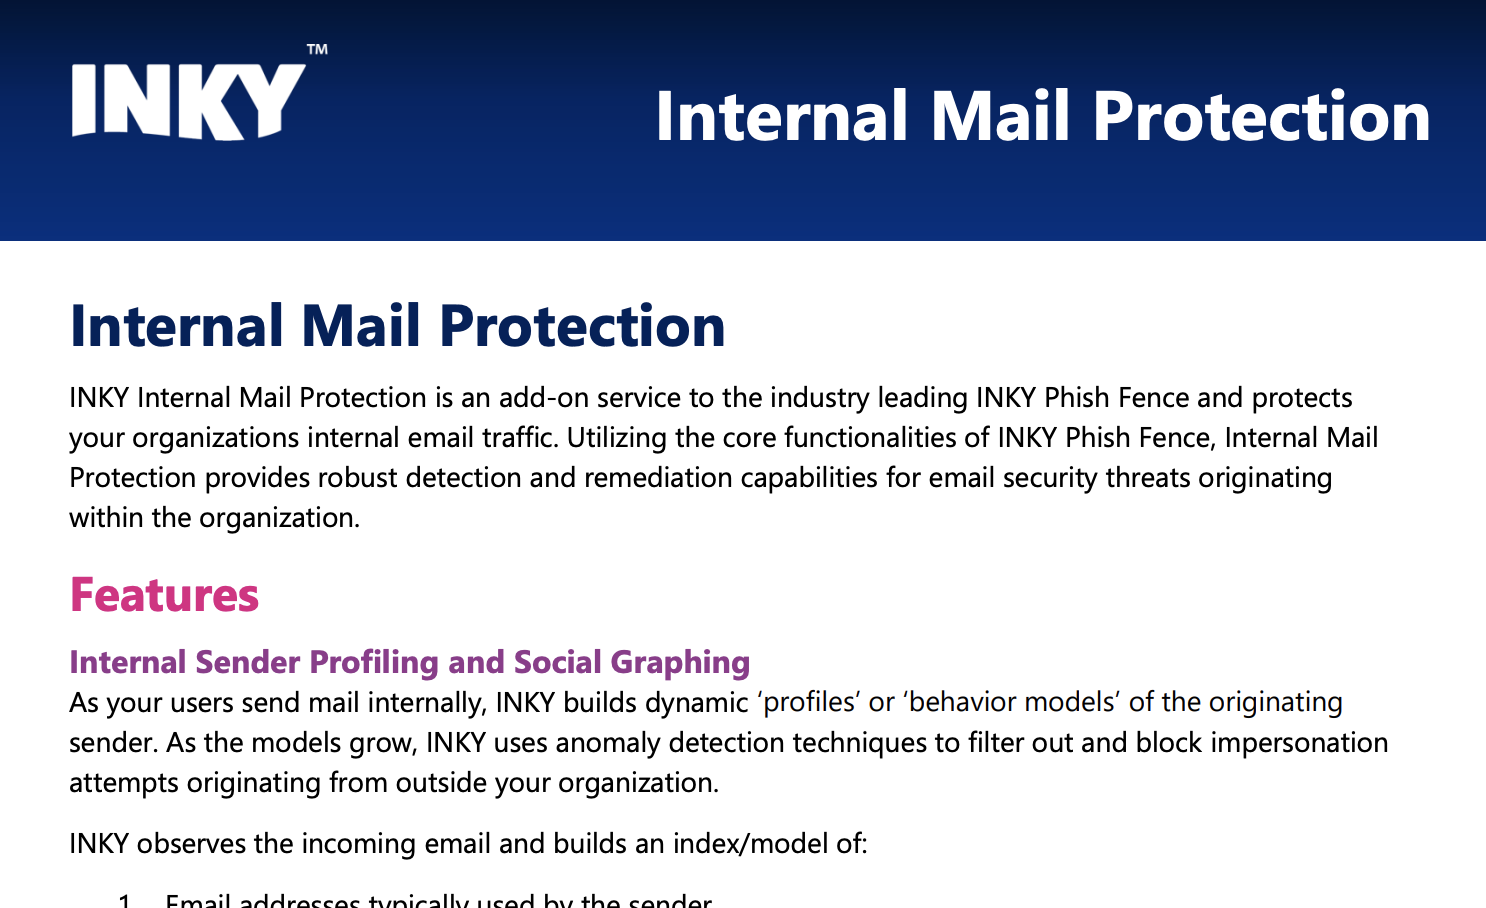 INKY Internal Mail Protection